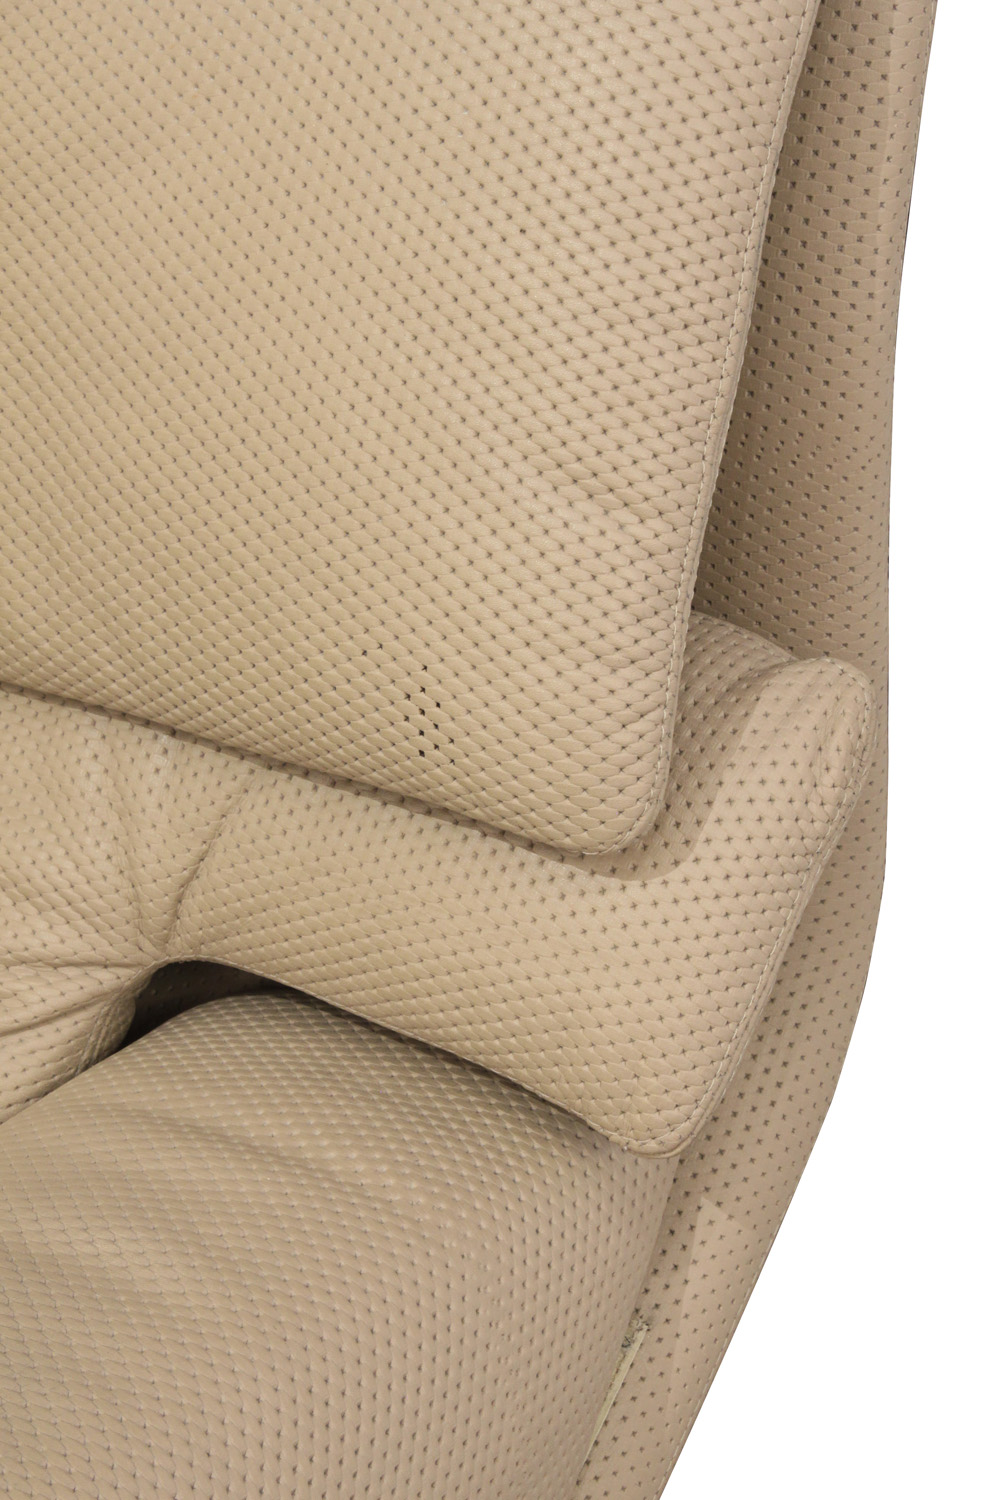 Onda 95 arms brown leather loungechairs152 detail4 hires.jpg